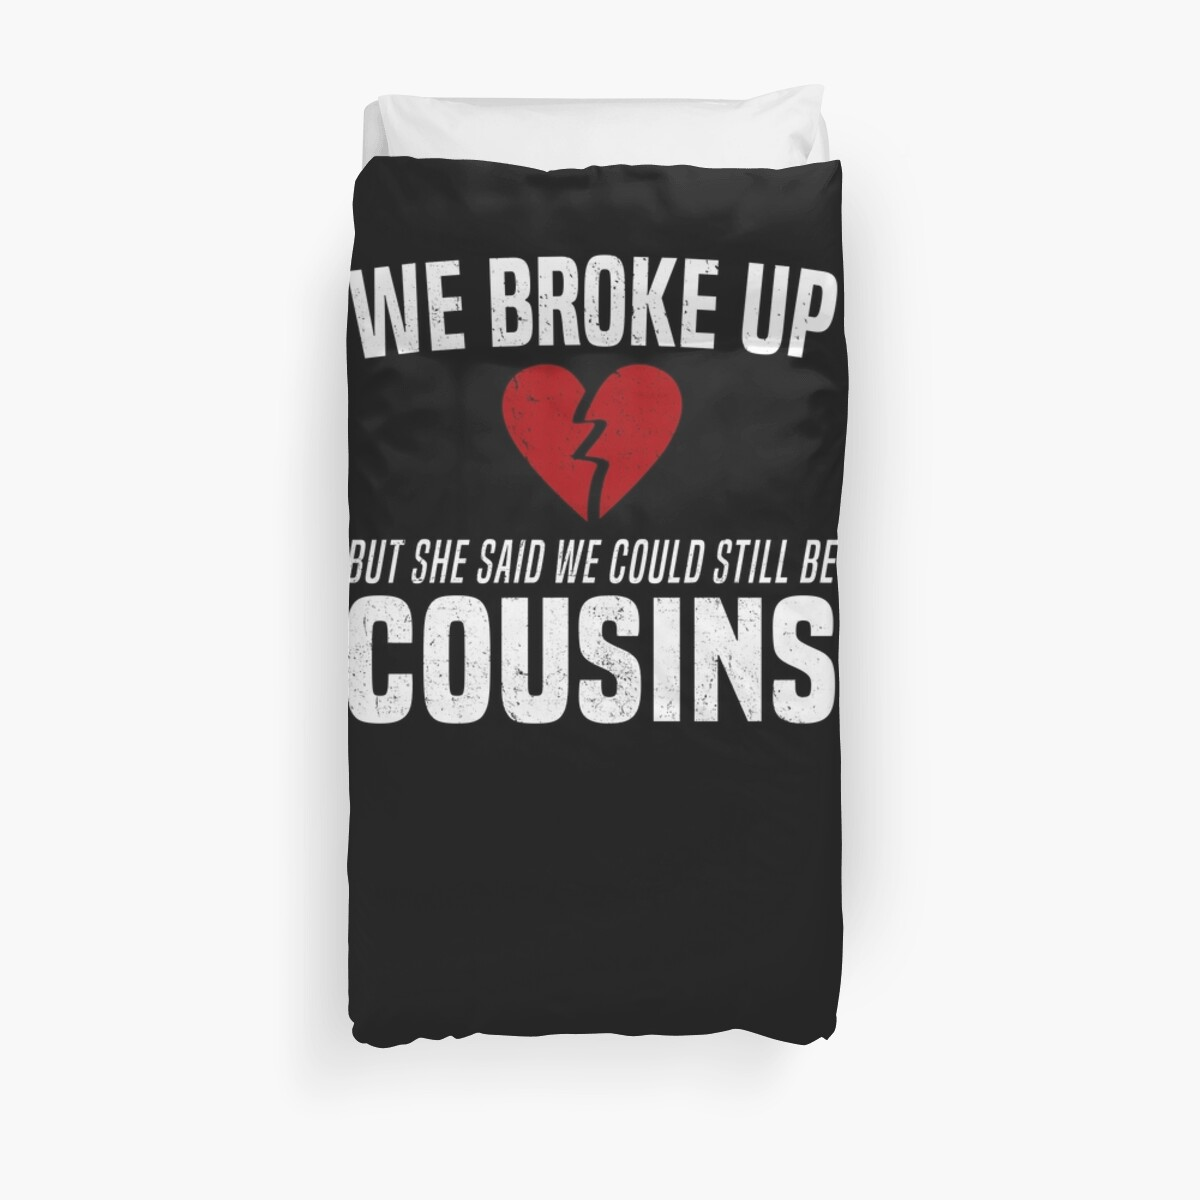 b440892a We Broke Up Funny Redneck Break Up Relationship Meme T-Shirt by LookTwice